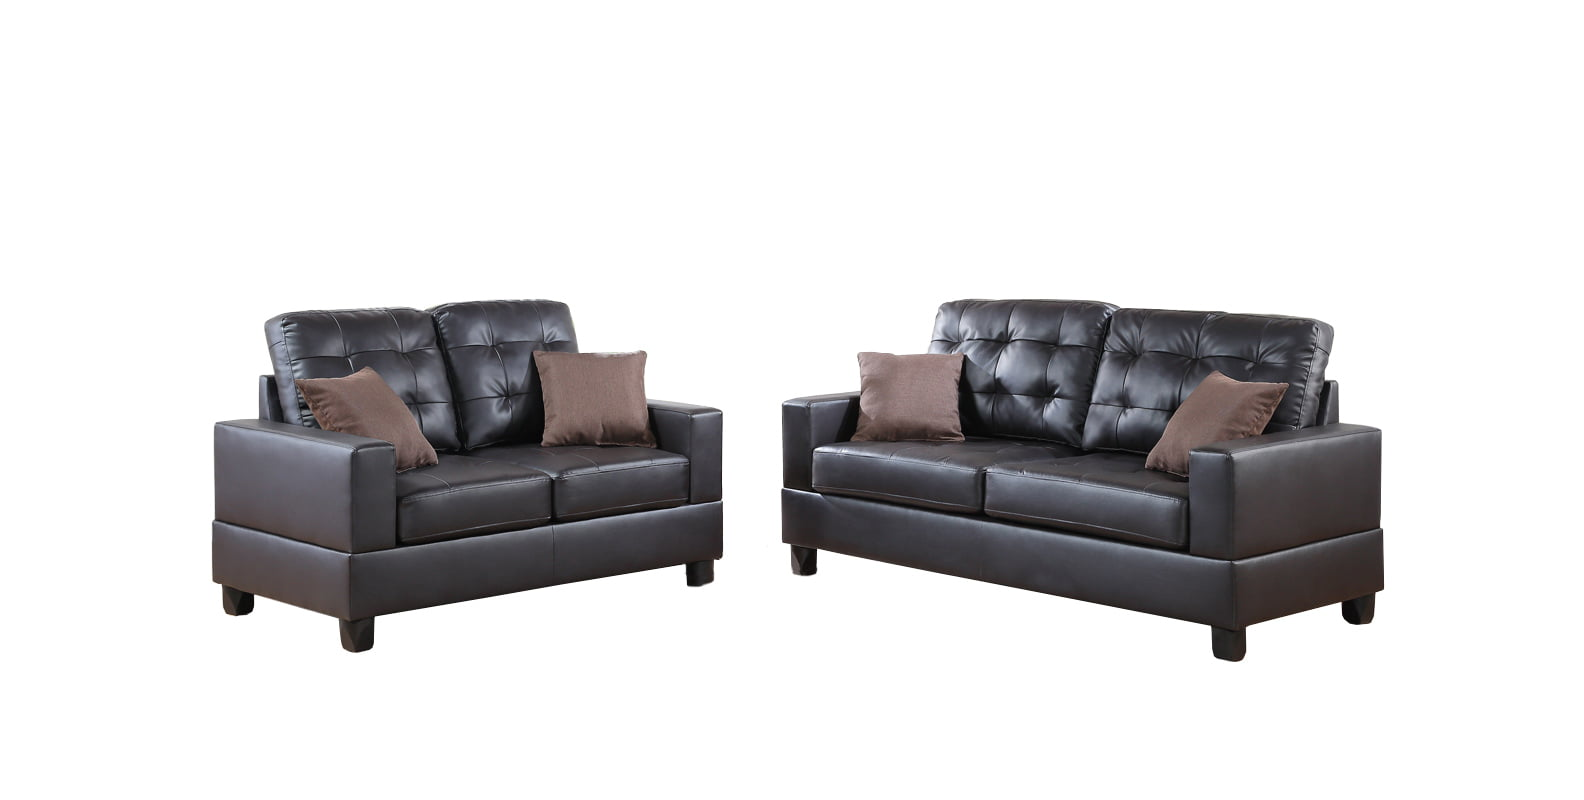 Bobkona Aria Faux Leather 2-Piece Sofa and Loveseat Set by Poundex